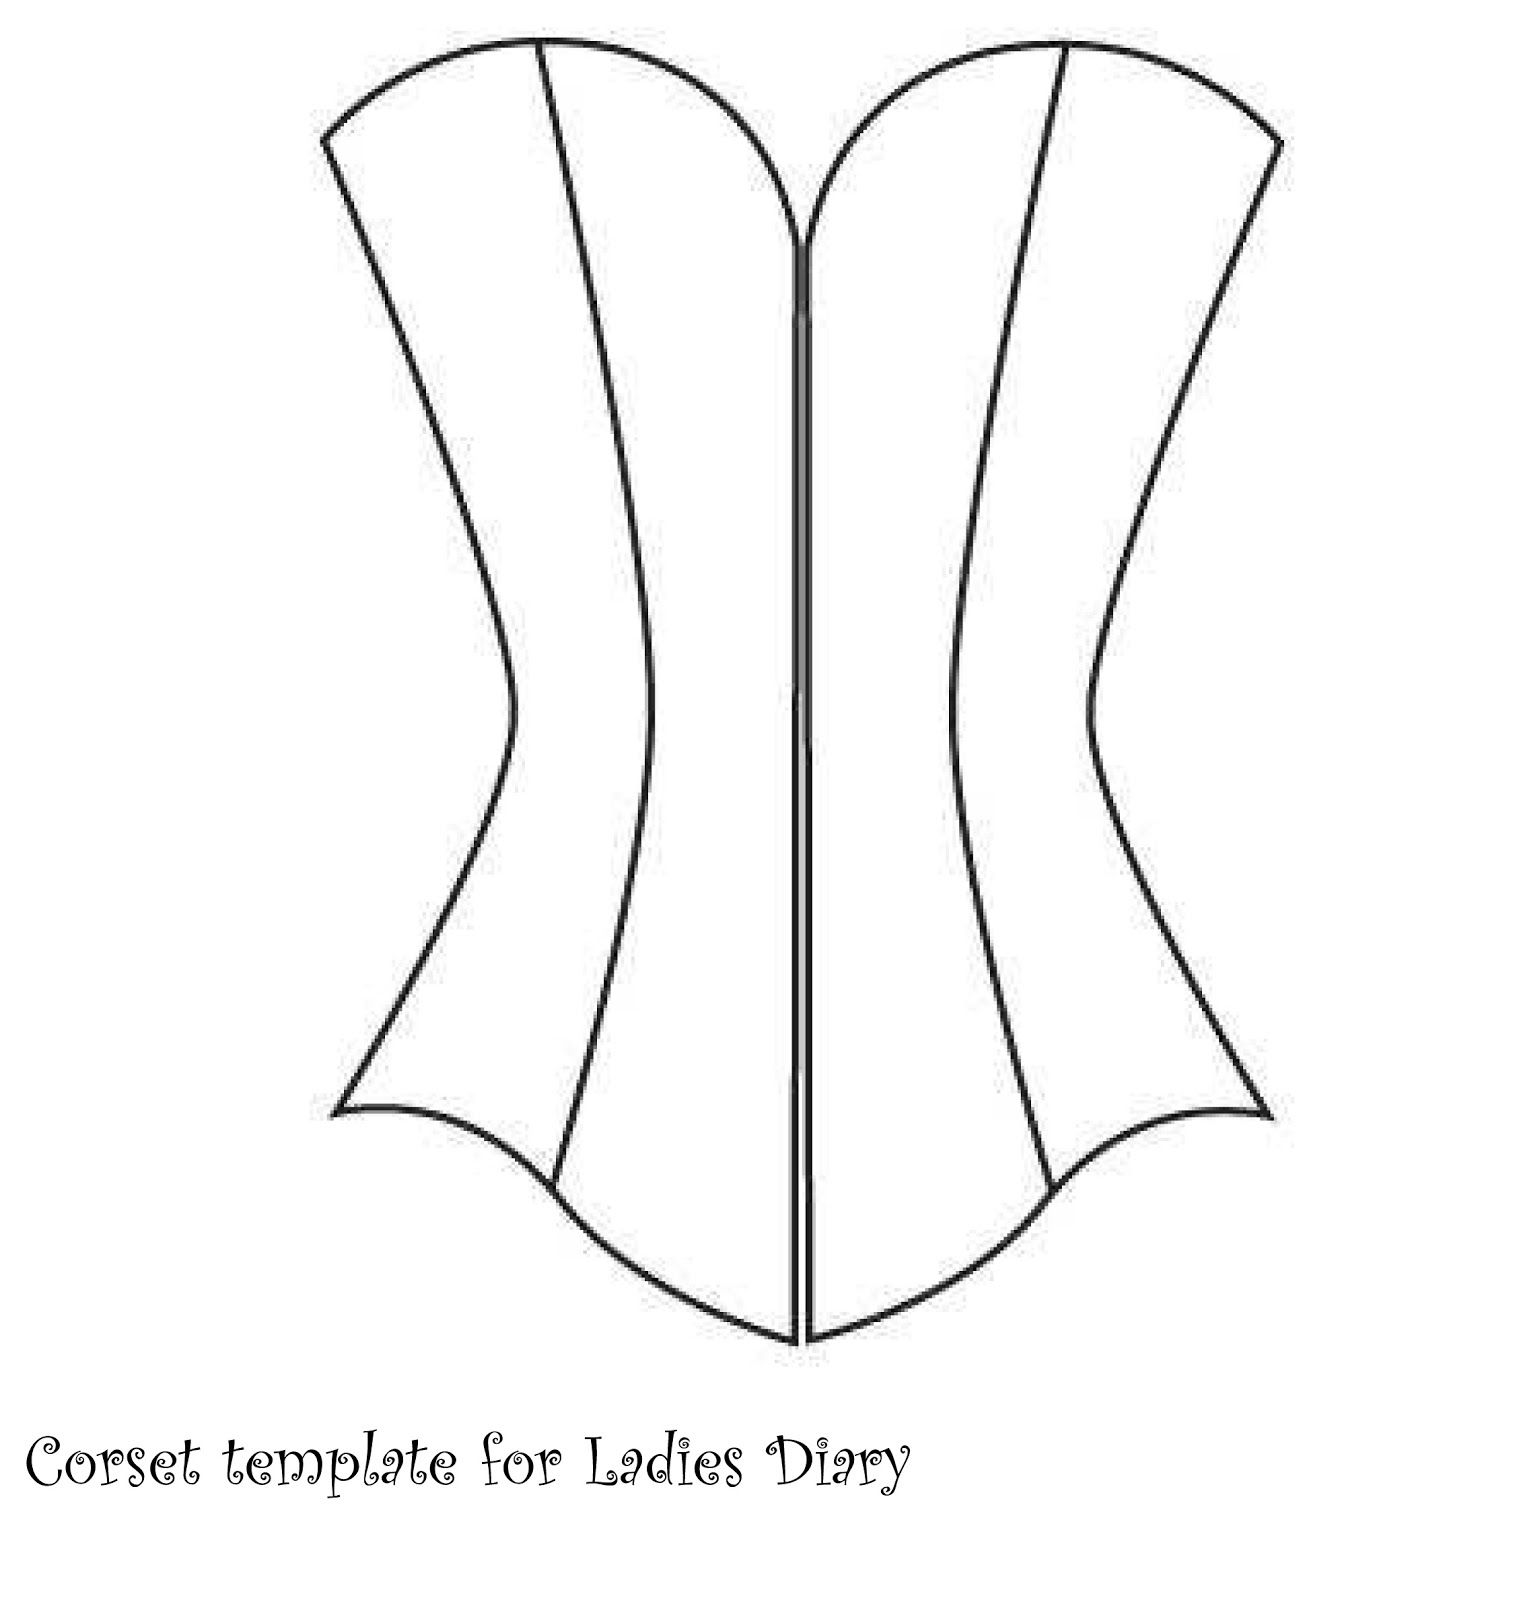 Corset+template+for+Ladies+Diary+(3).jpg (1513×1600) | WEDCARD ...